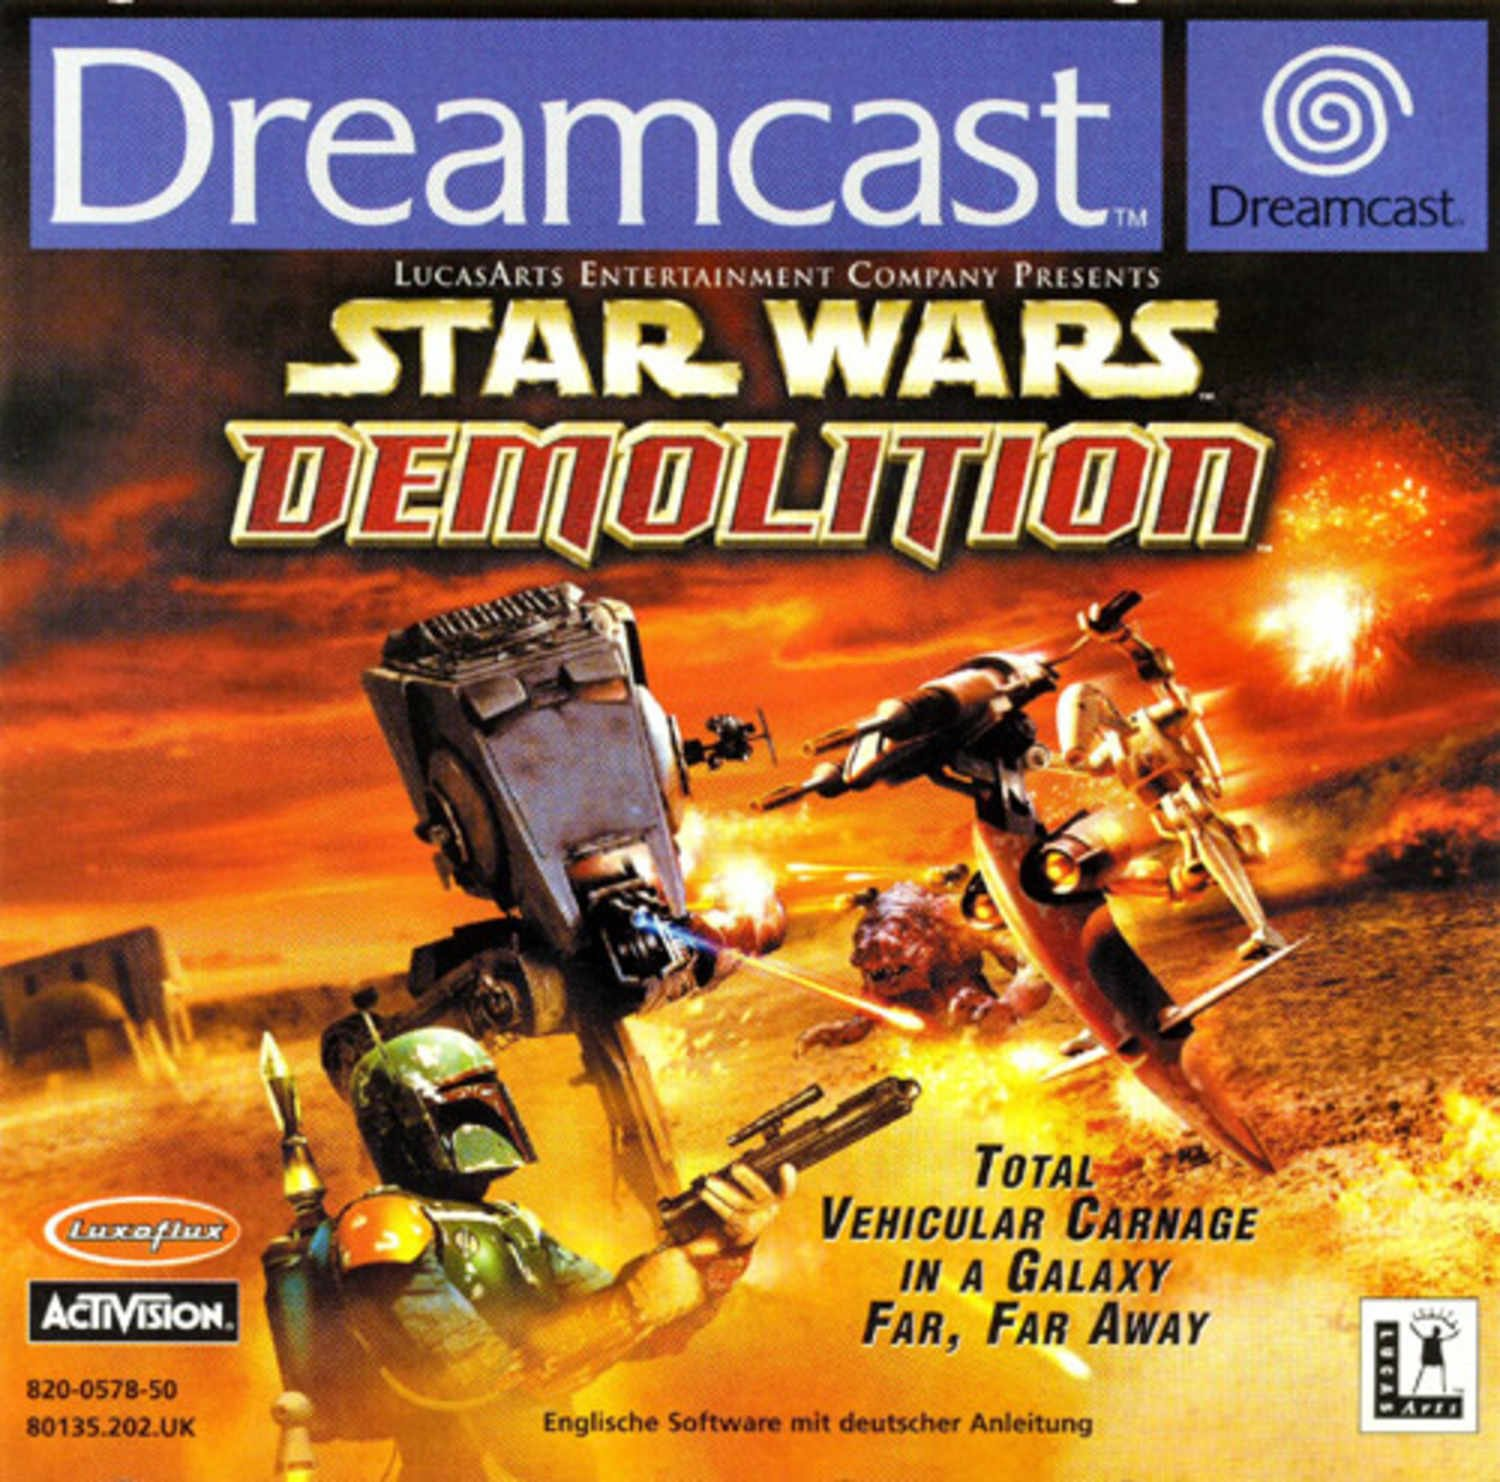 Star Wars Demolition - Dreamcast